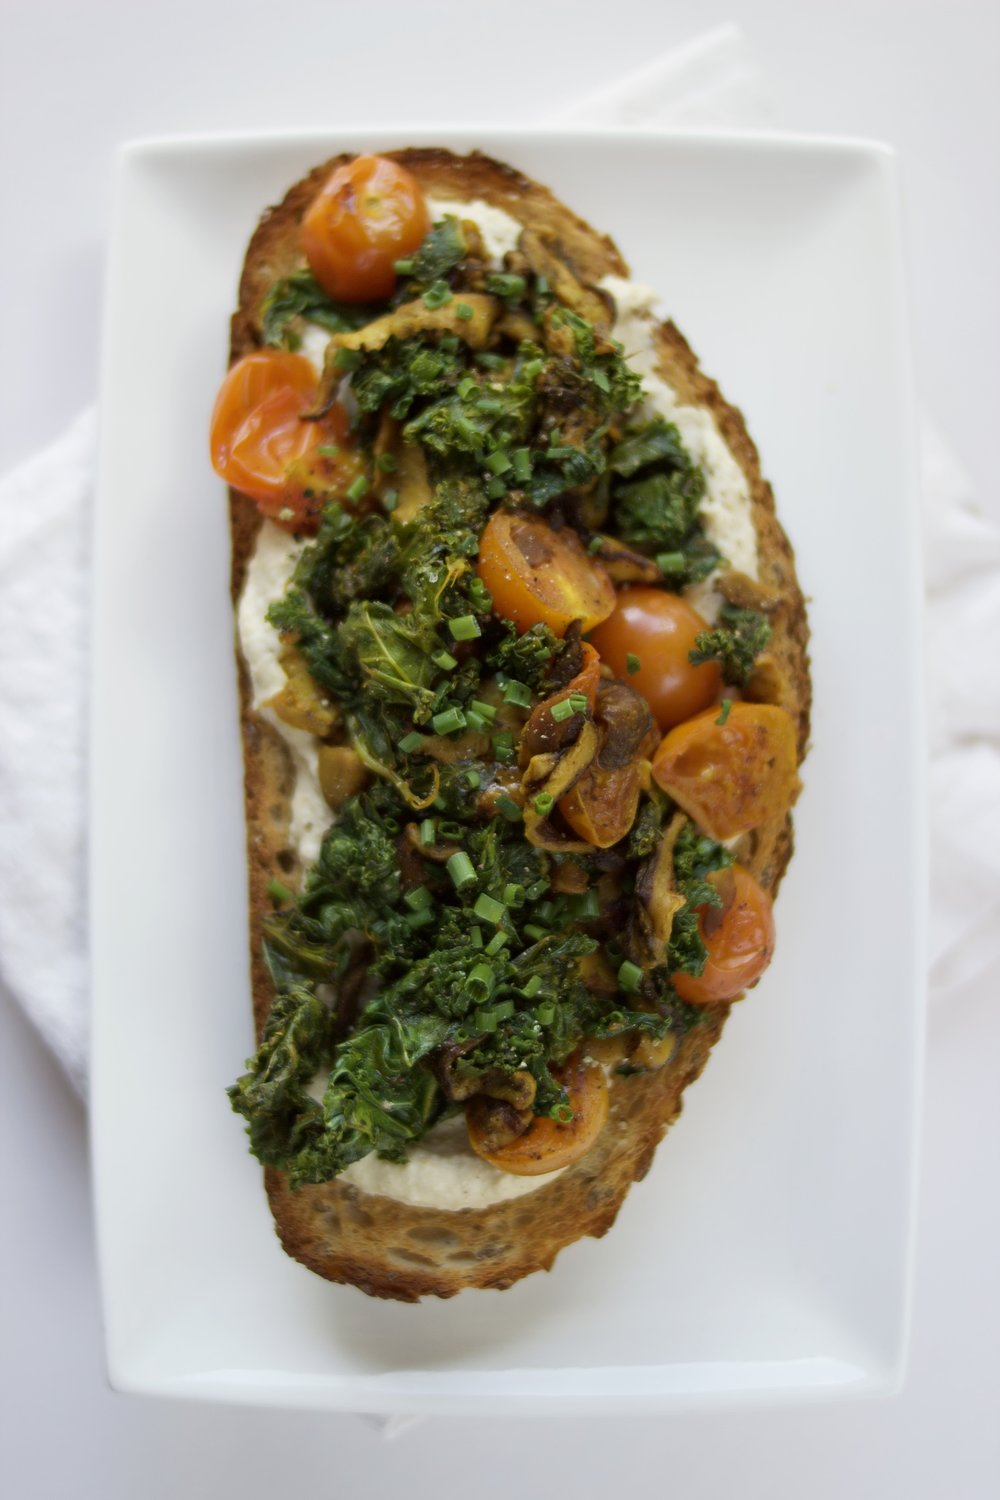 Simple vegan meal ideas: Hummus, kale, shiitake and turmeric toast | Brownble